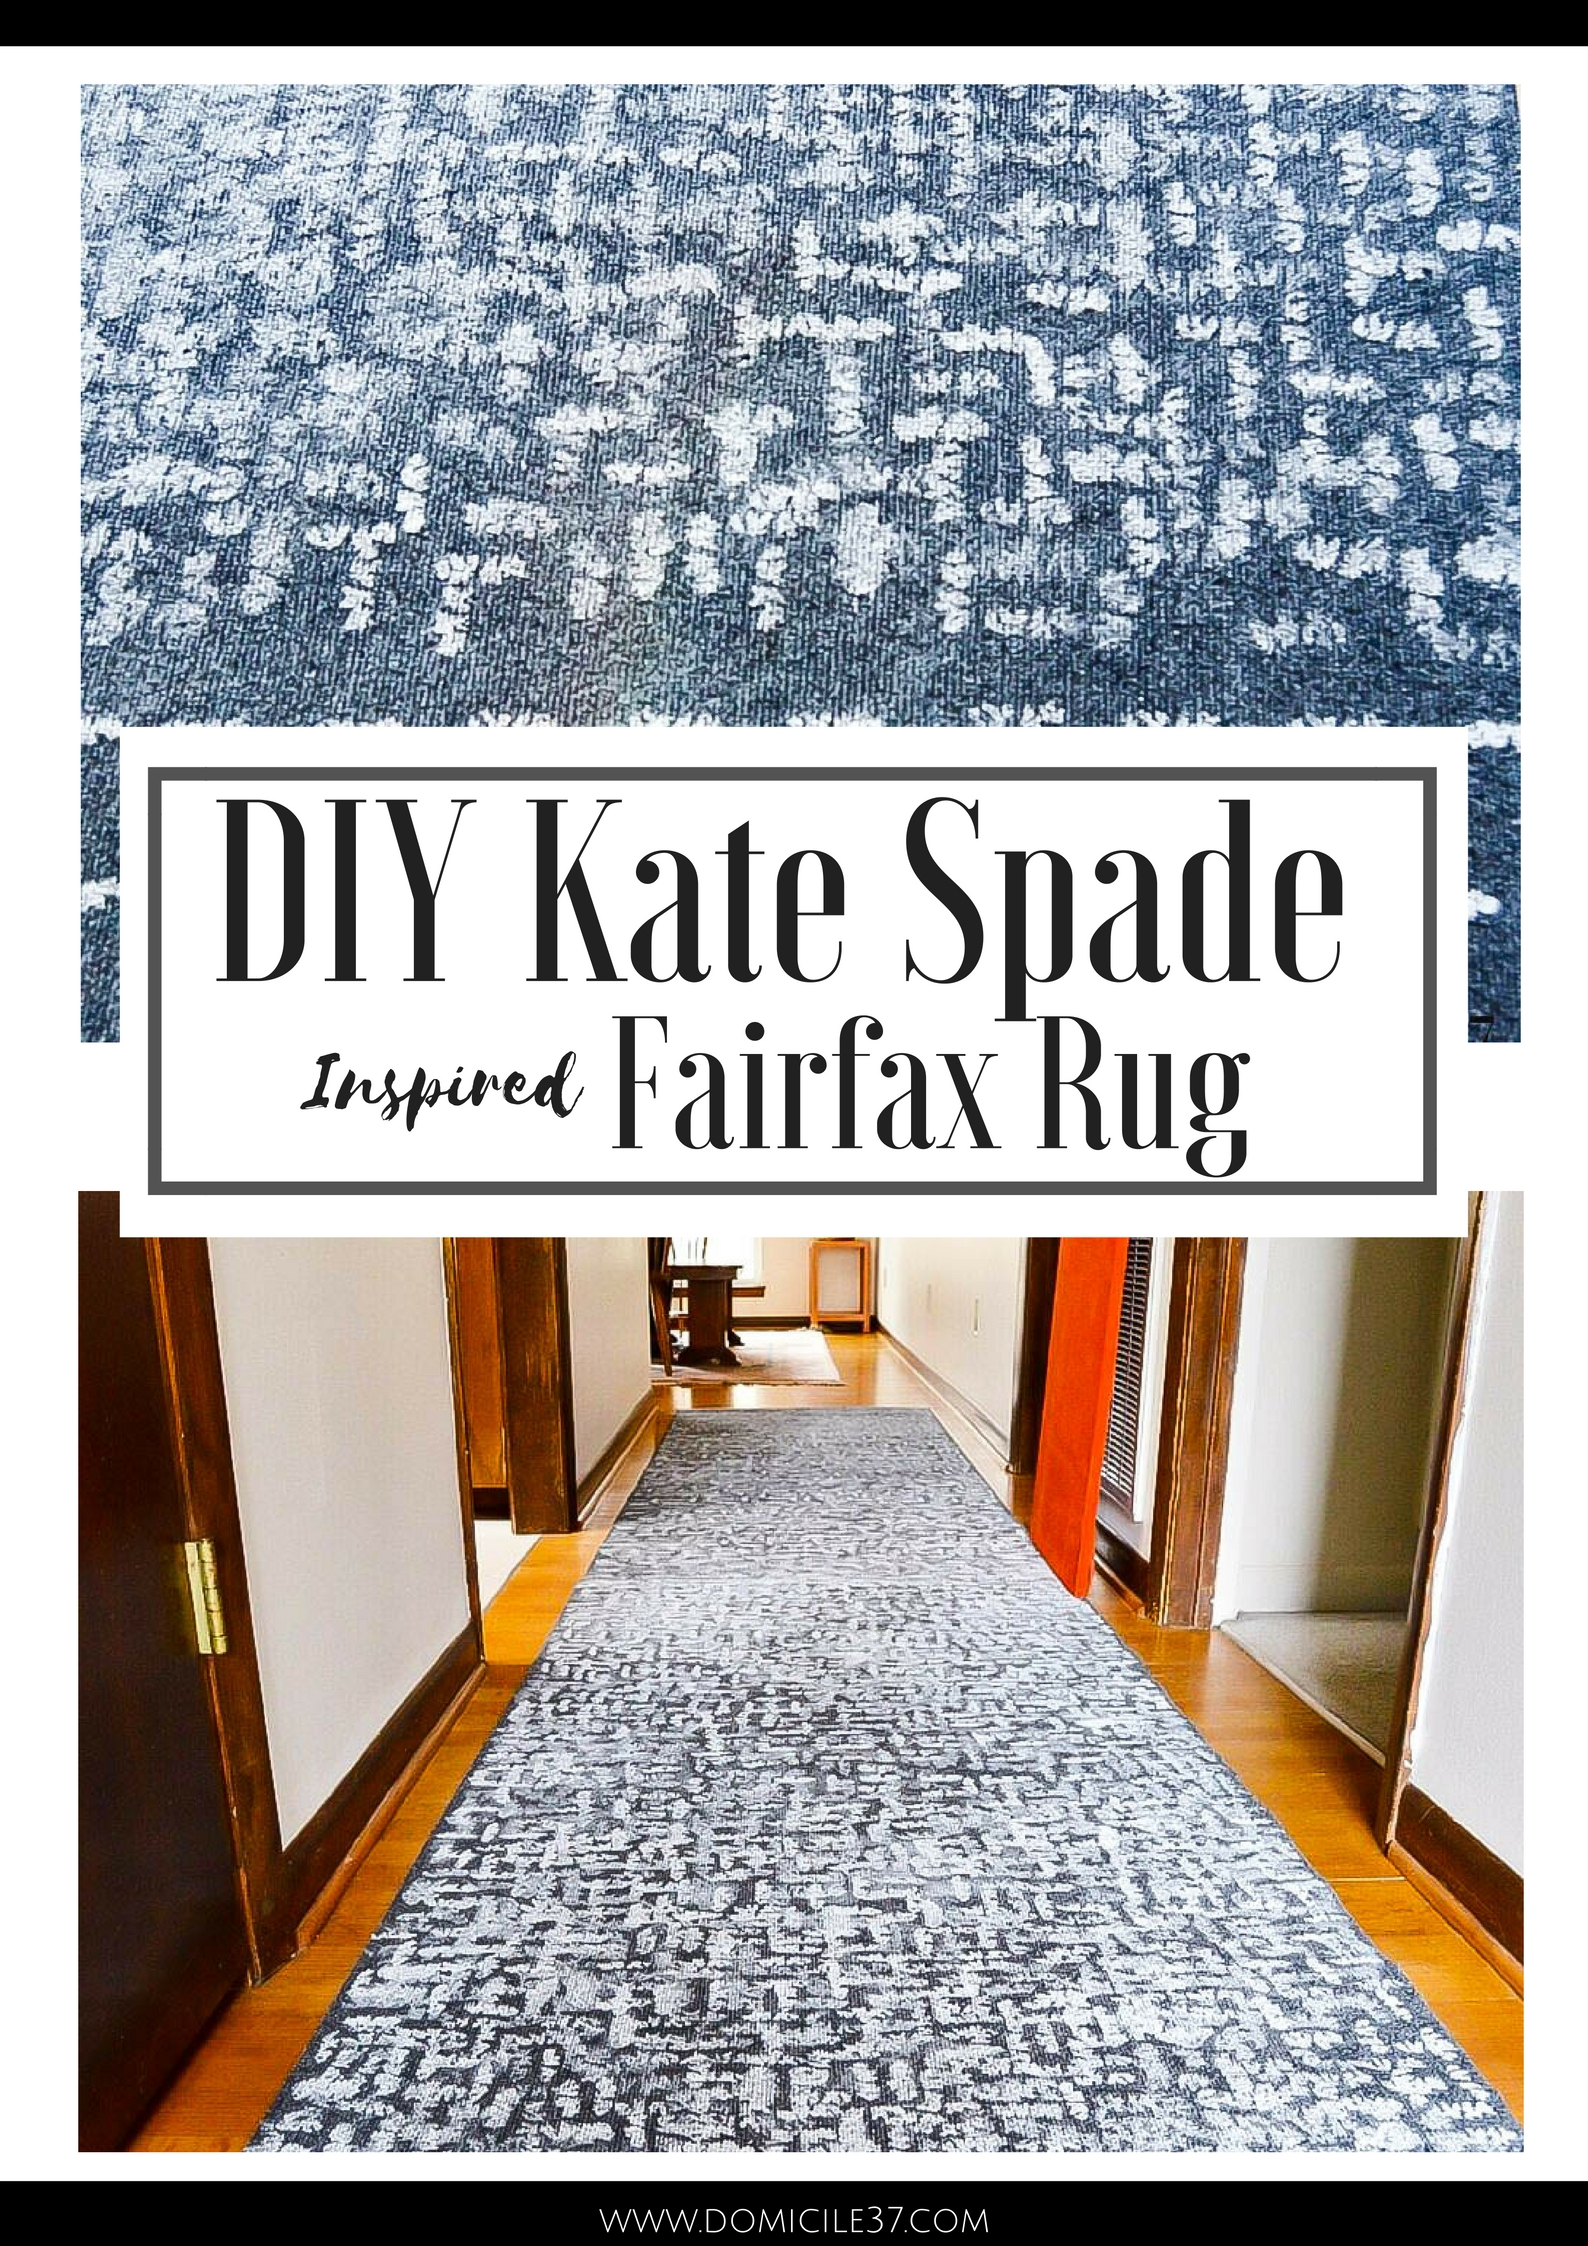 How to create a Kate Spade inspired stippled rug | Painted rug tutorial | Painted utility rug| DIY Utility rug | Kate Spade inspired | Inspired by DIY